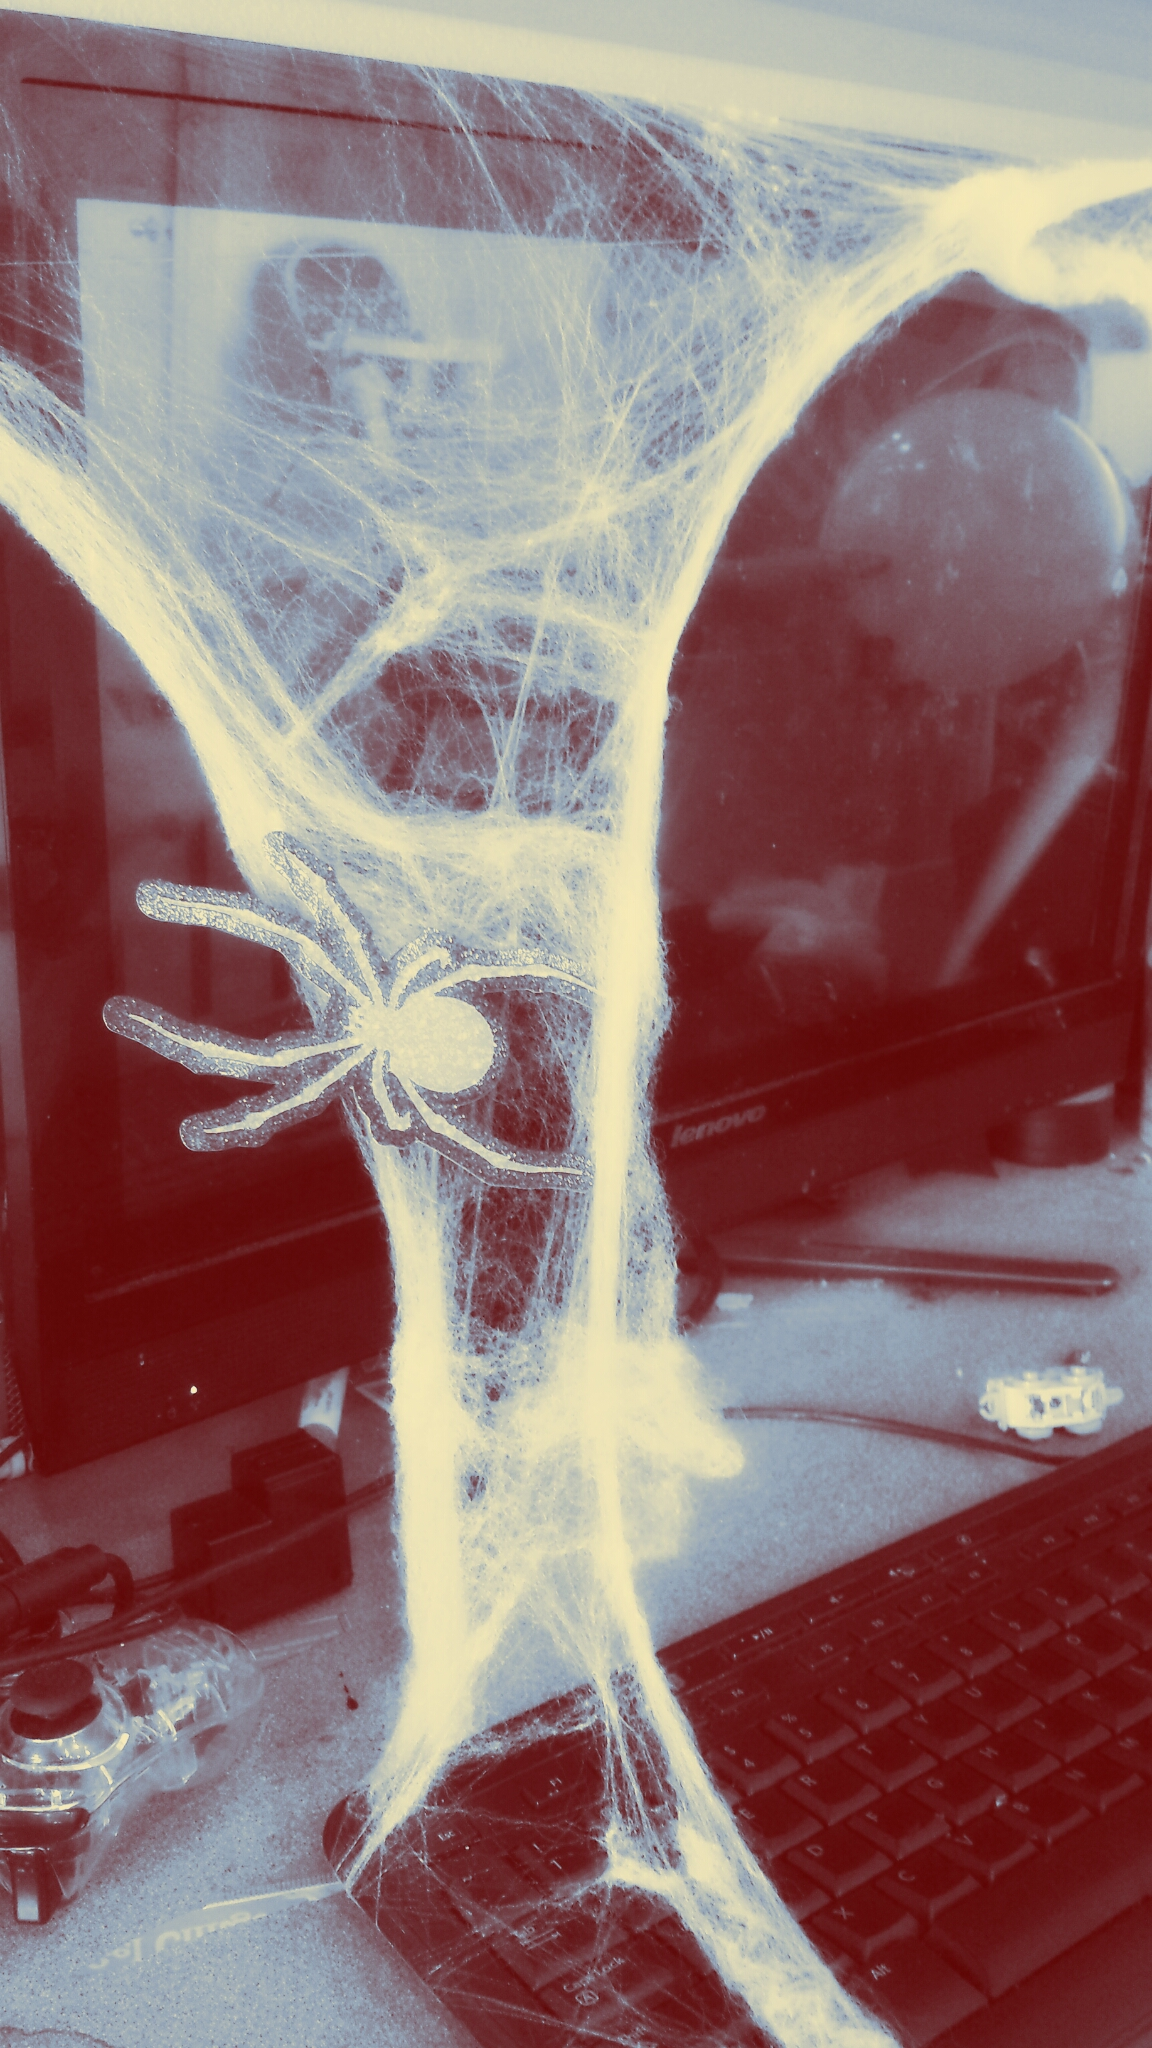 We spread fake spider webs around the house and added paper spiders.  Photo edited with Pixlr.